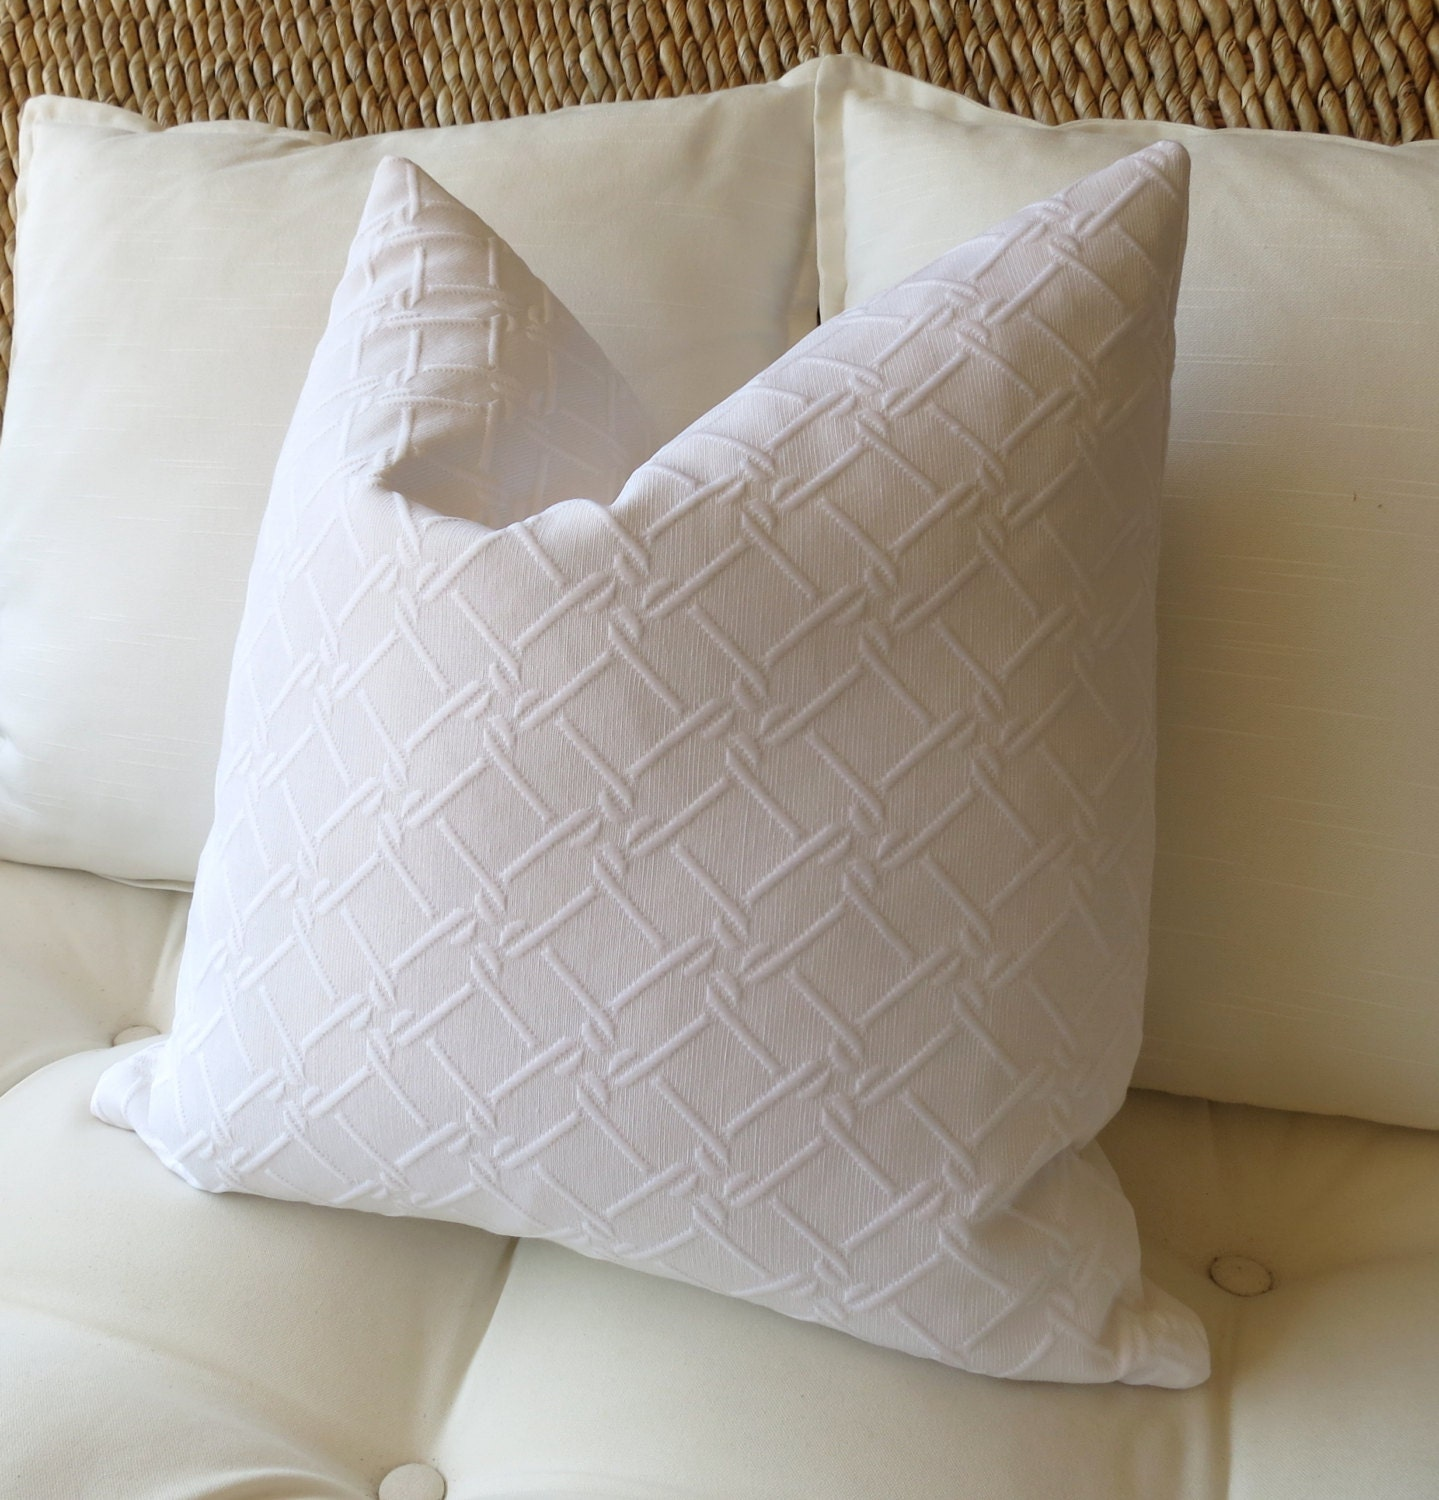 White Throw Pillows. Home Goods / Home Decor / Decorative Accessories / Throw Pillows. of 5, Results. Set of 2 Retro Farmhouse Black and White Throw Pillow Case 18 x 17 Reviews. Clay Alder Home Sakonnet Decorative inch Mall Pillow Cover.